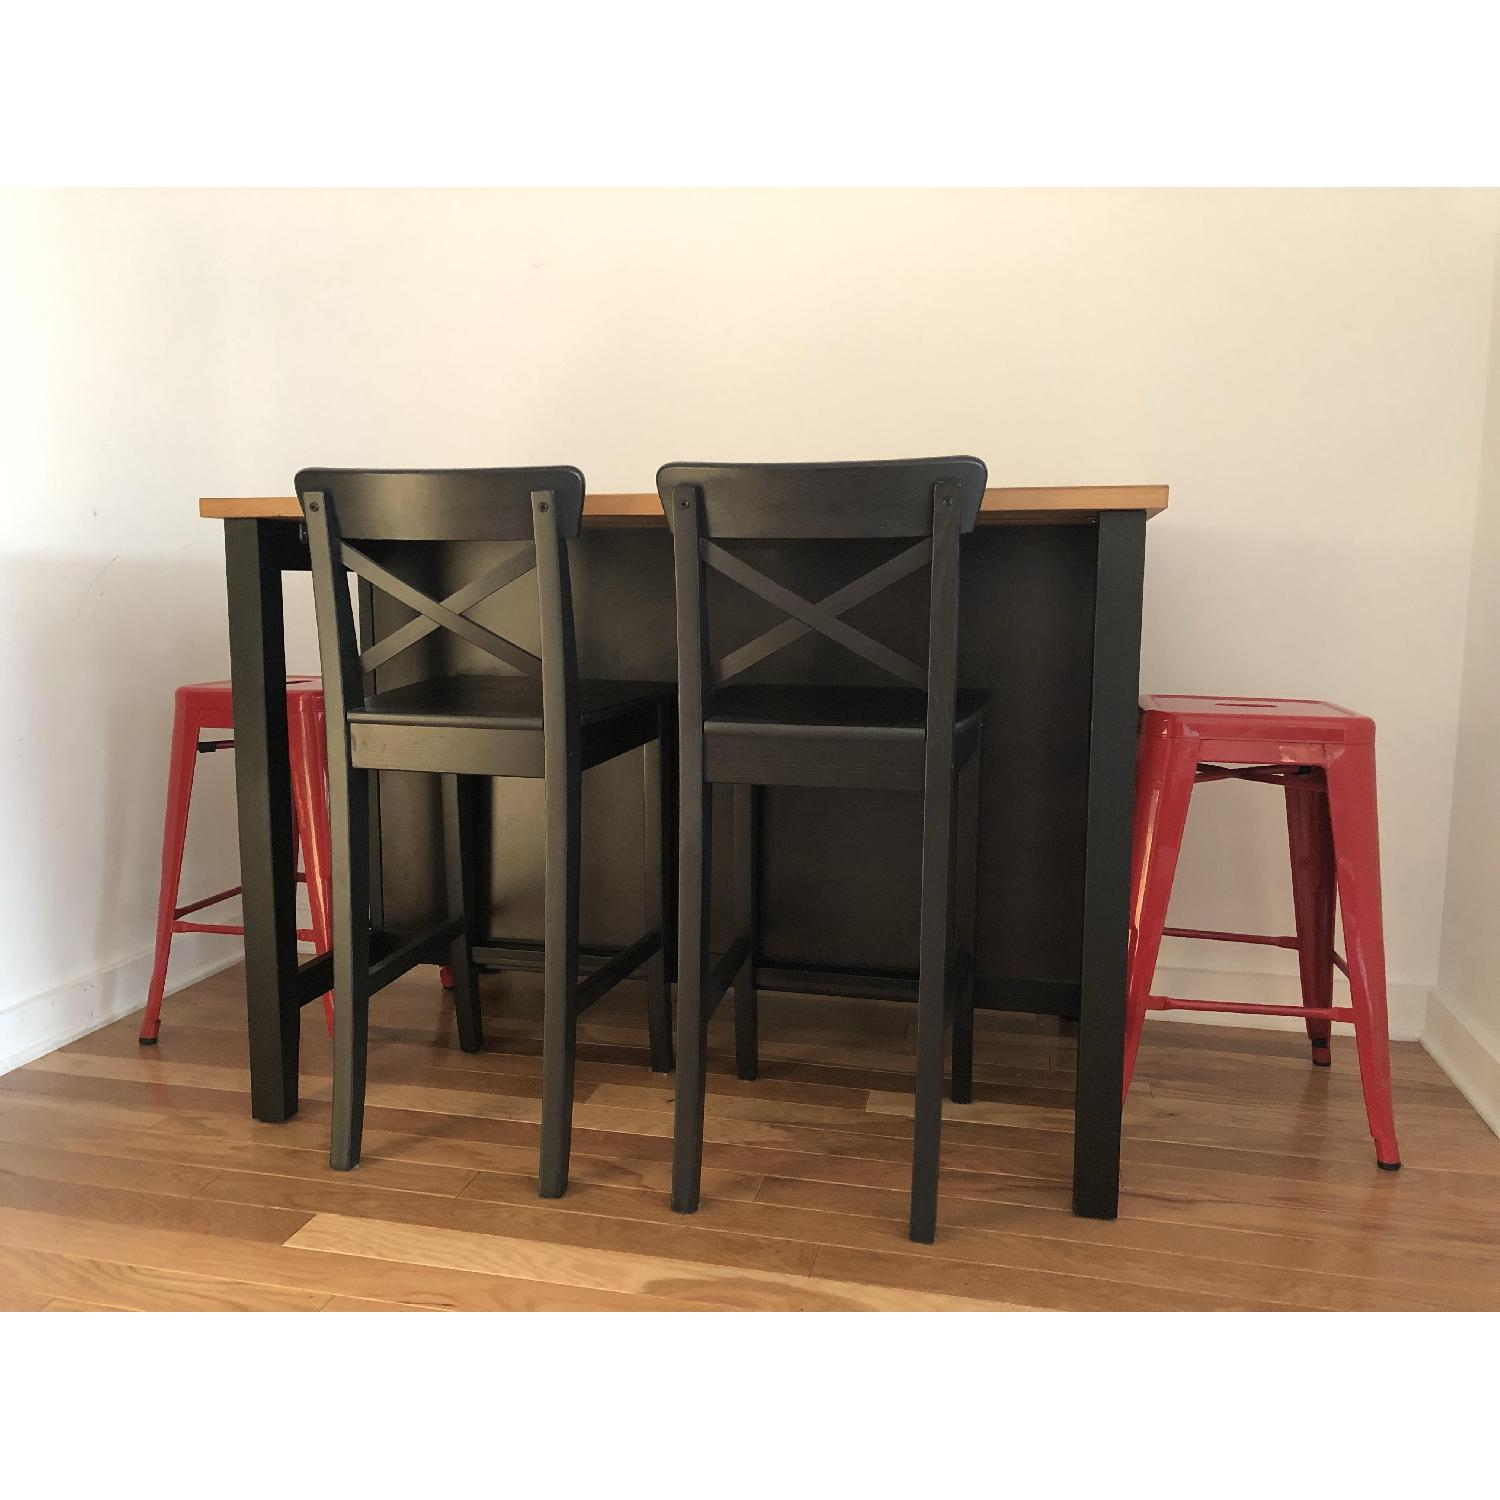 Ikea Kitchen/Dining Table w/ 4 Bar Stools